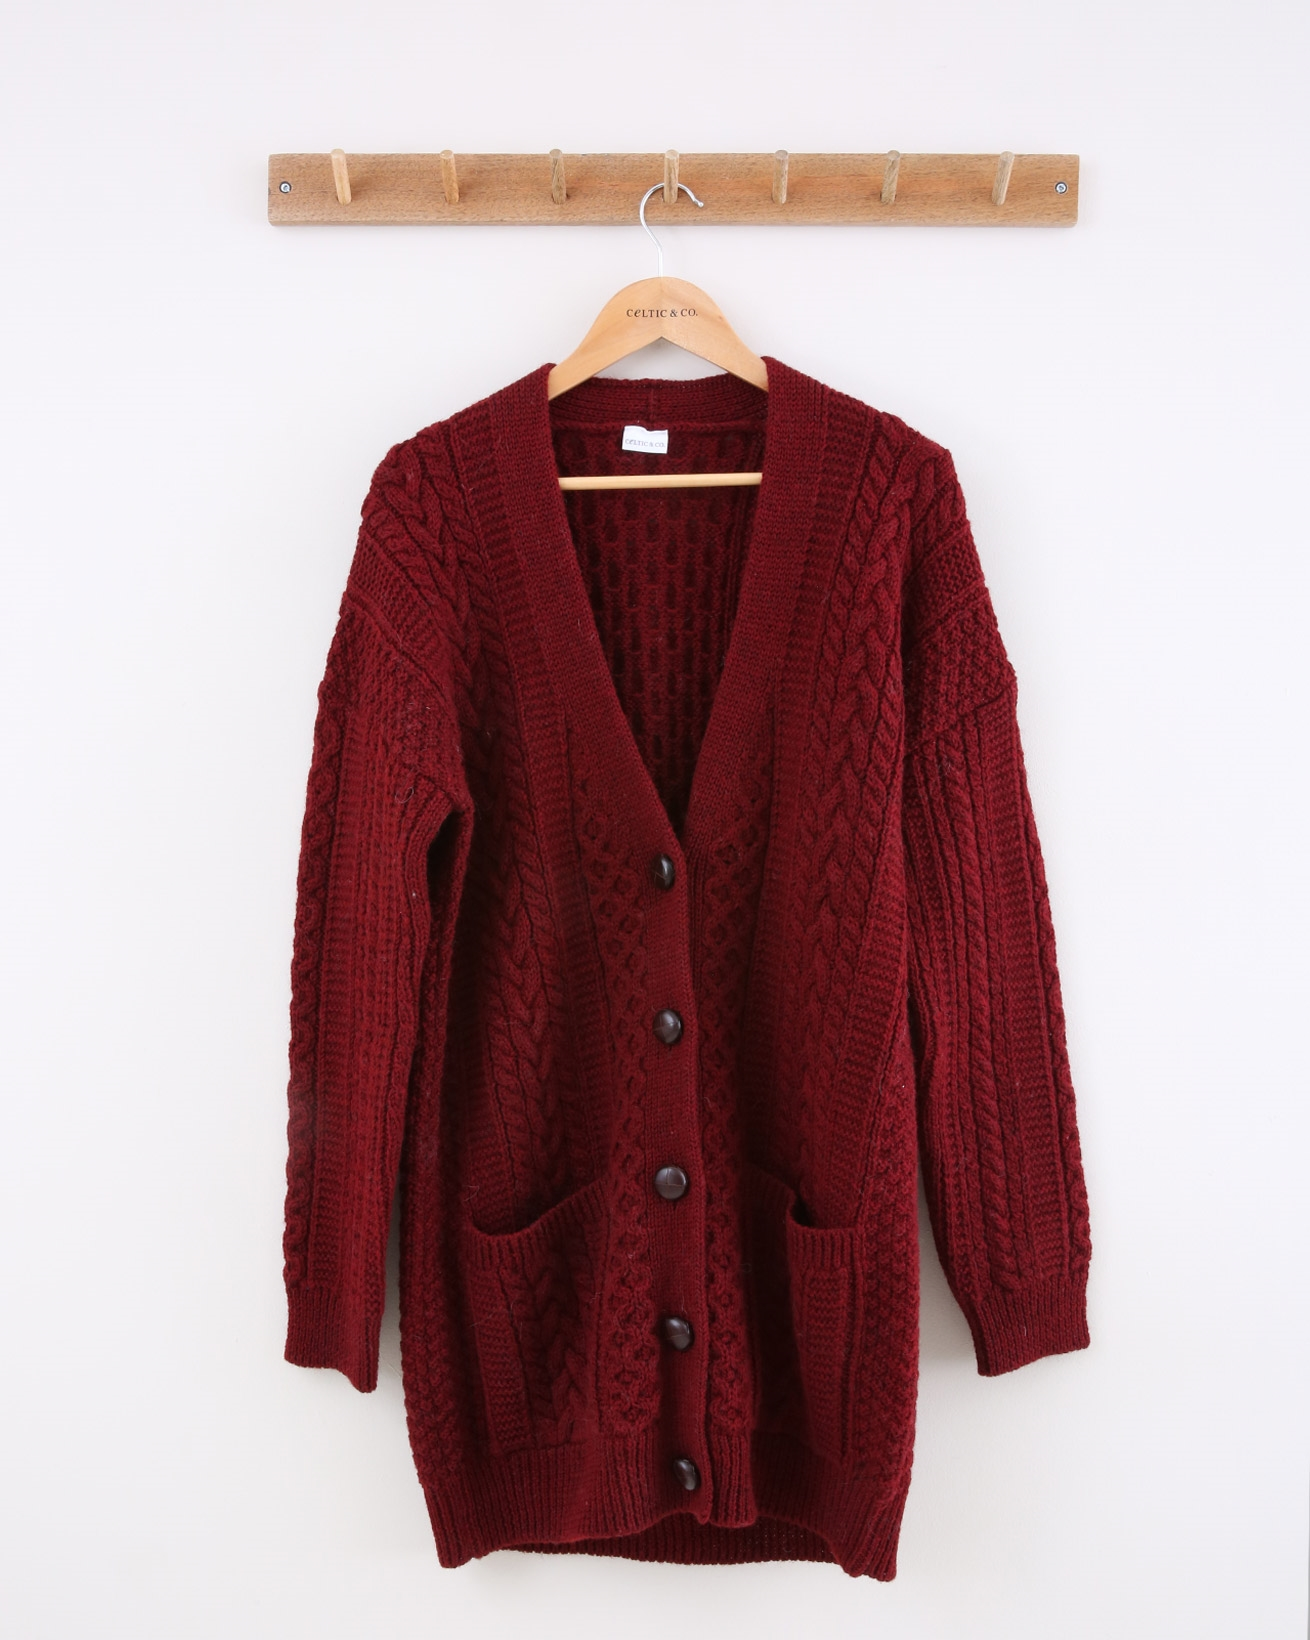 Boyfriend Cardi - Small - Sloeberry - 1425